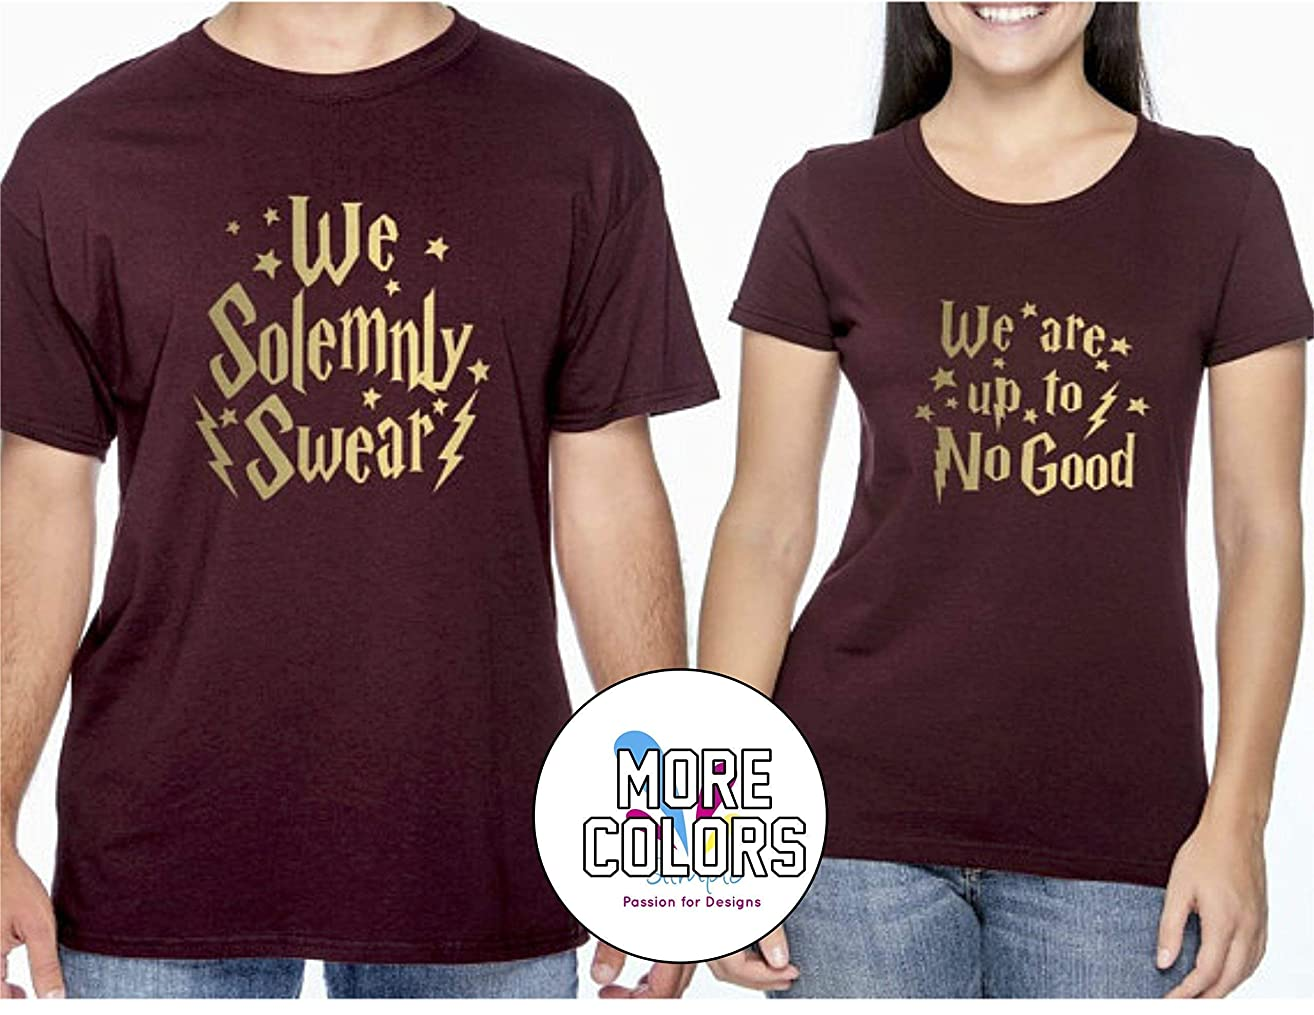 Harry Potter Couple Matching Shirt T-Shirt Funny Tee Gift for Him Her Movie T Shirts